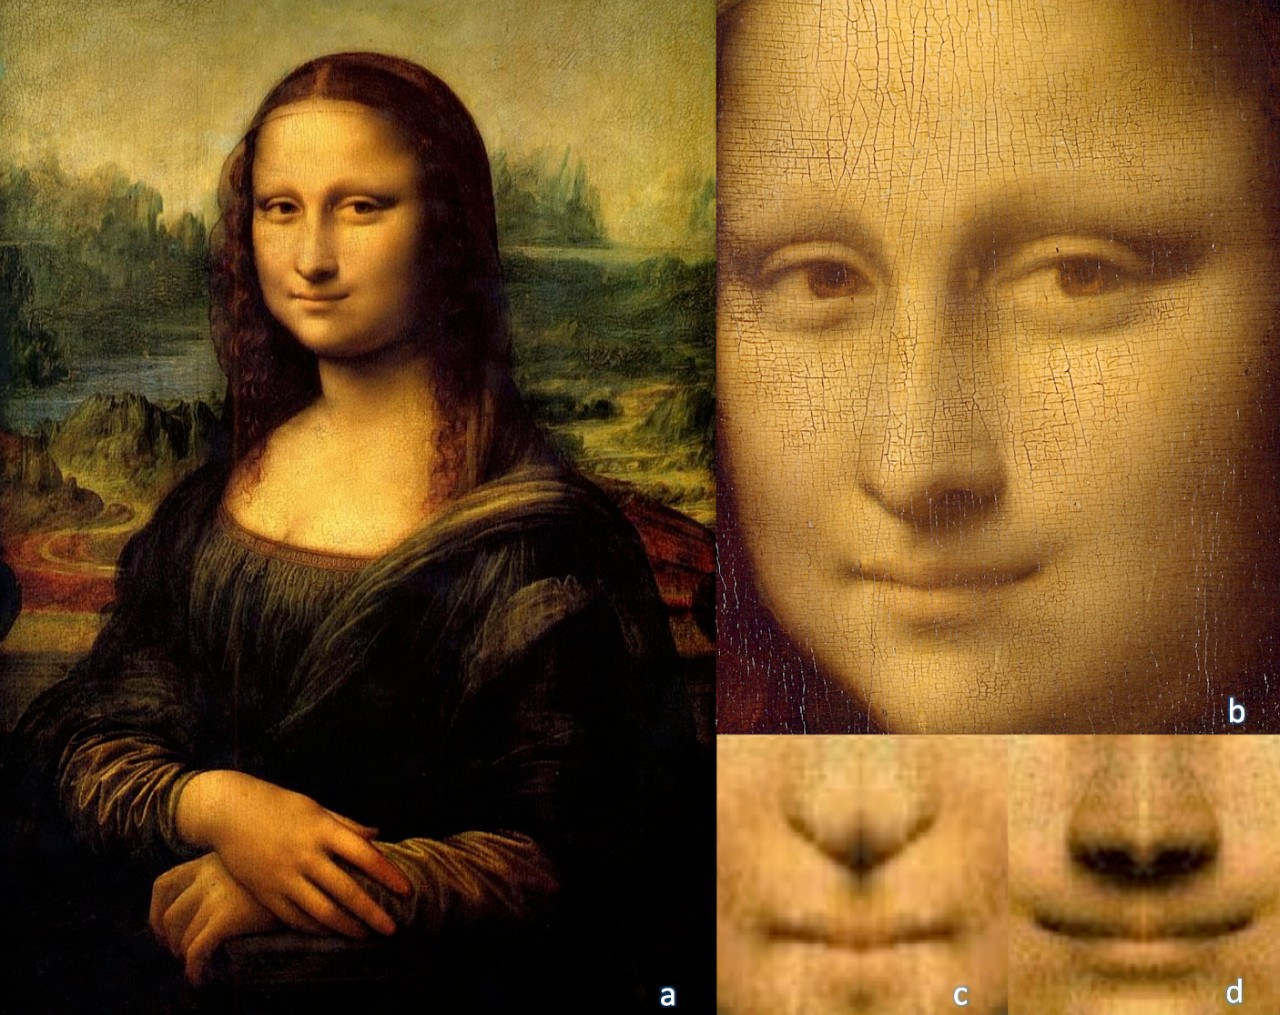 Collage of Mona Lisa painting with close-up of her smile.